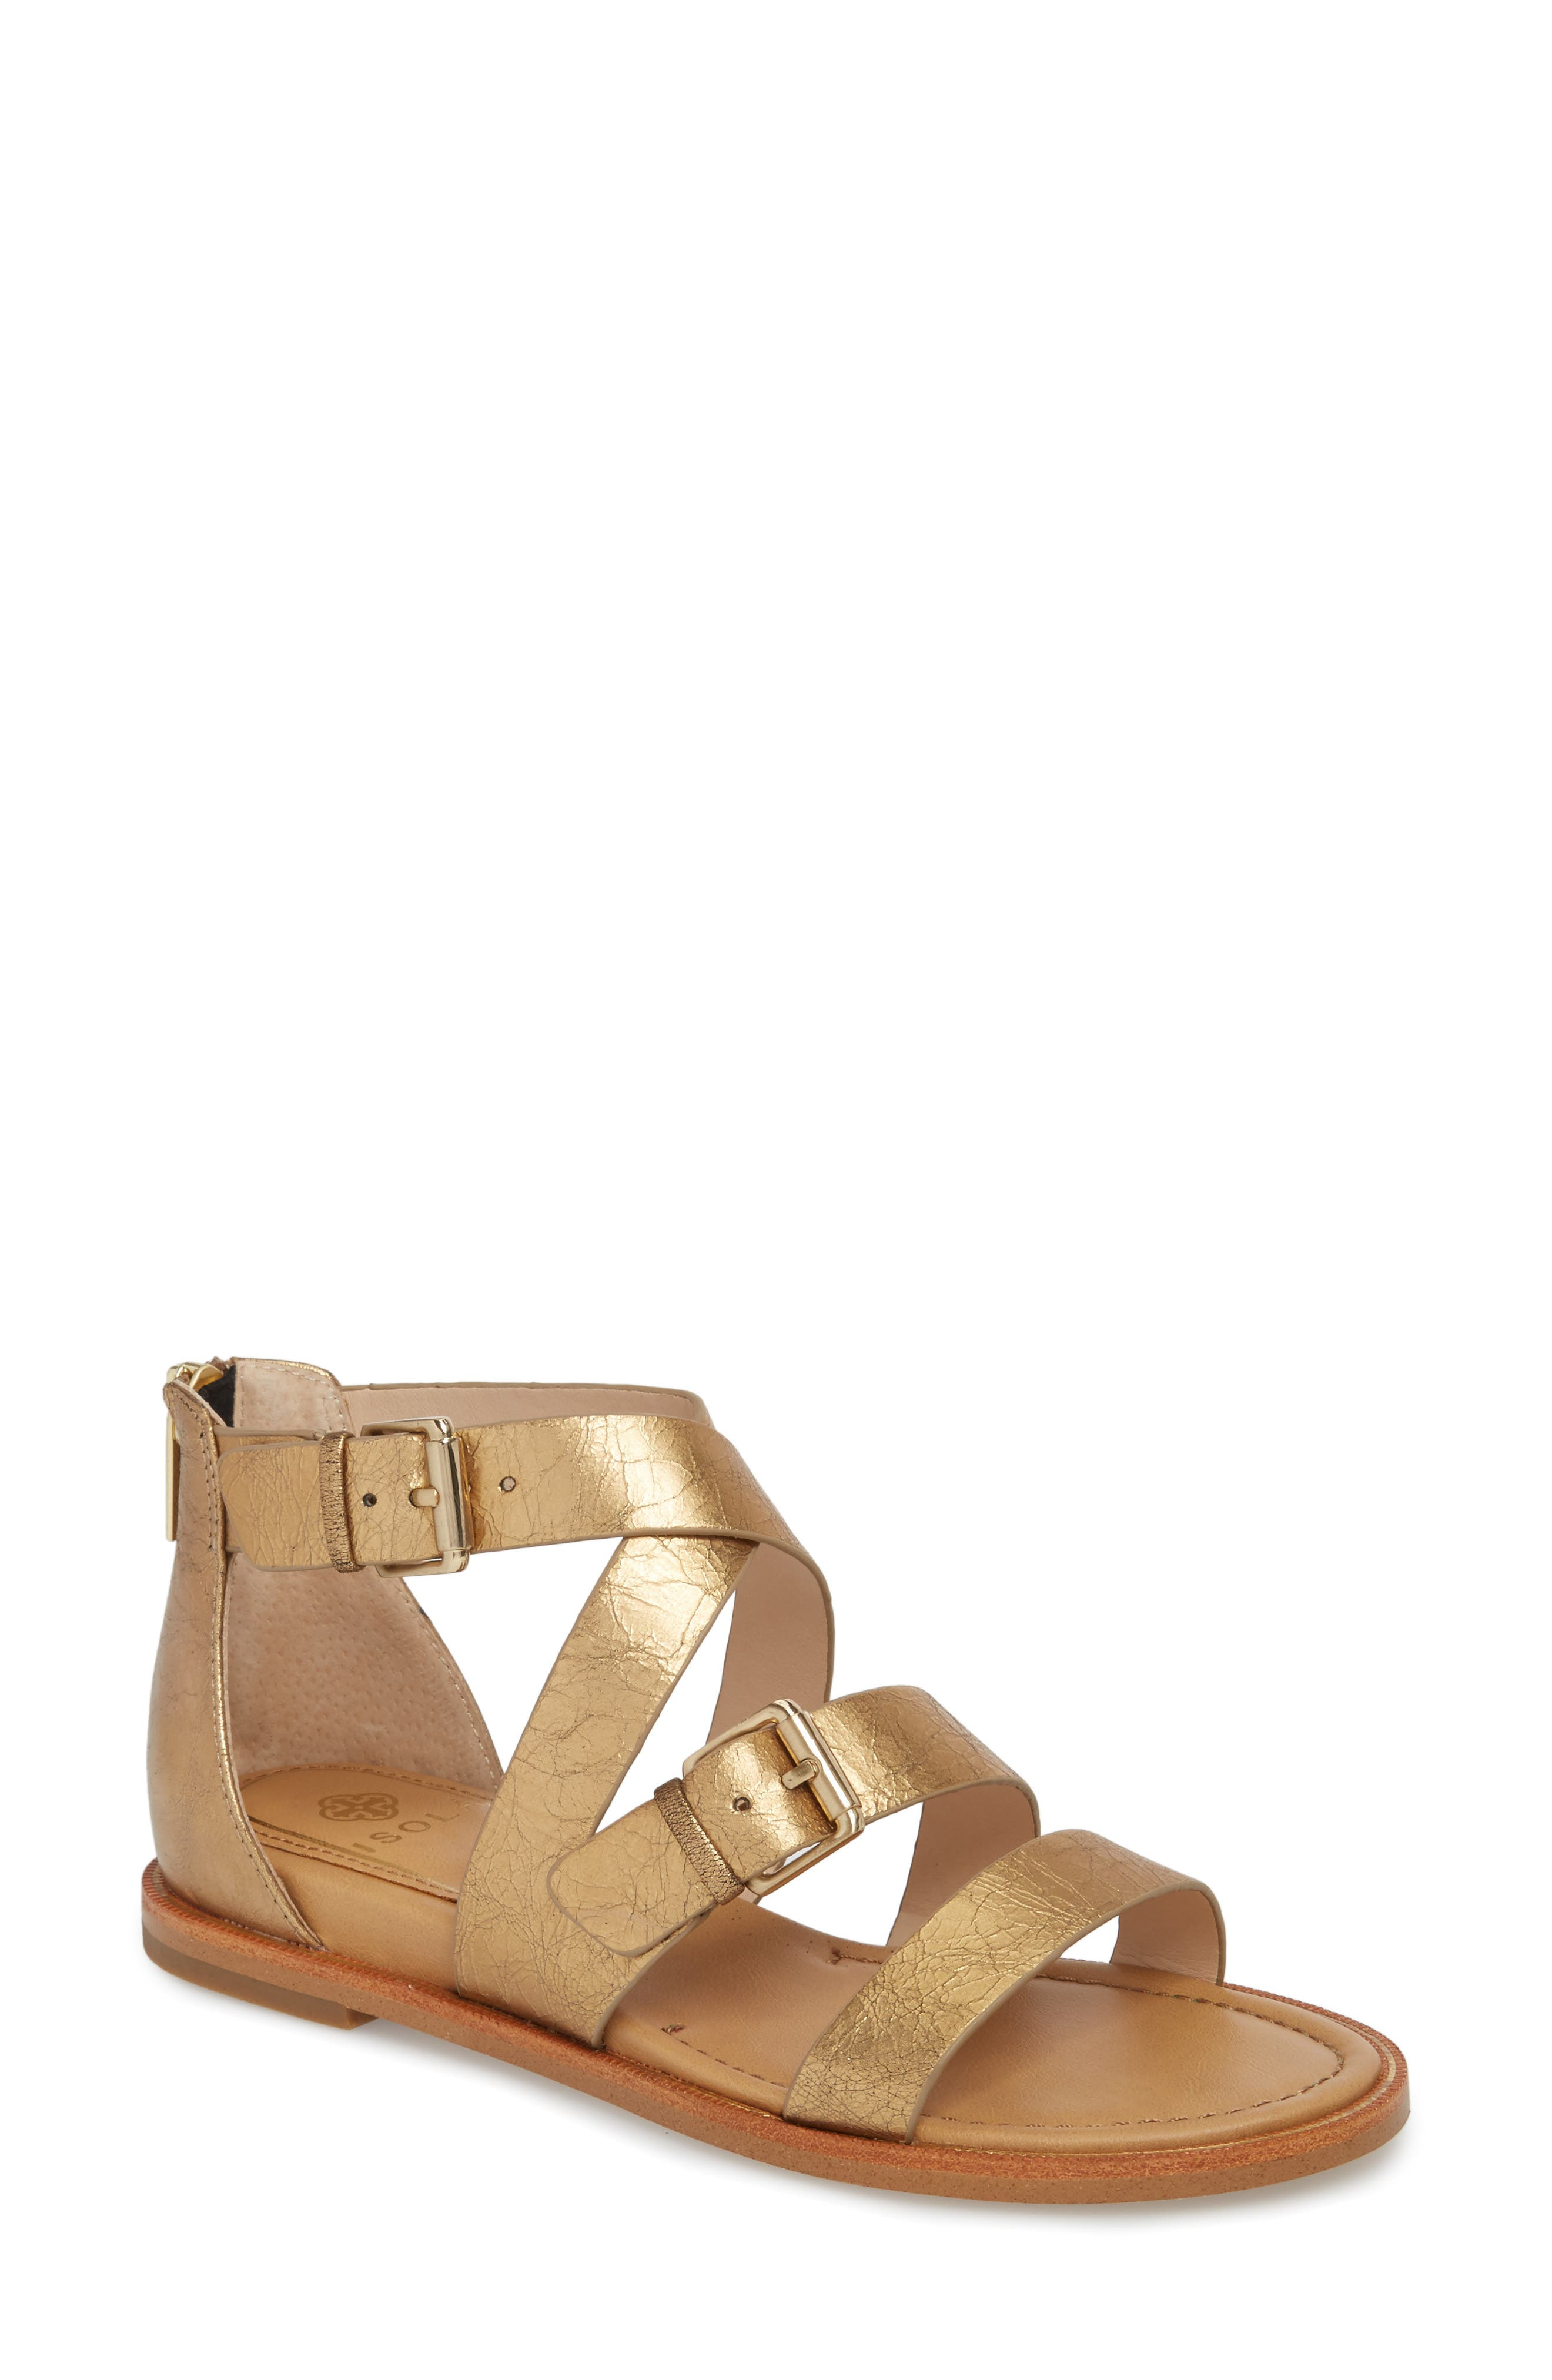 Isola Sharni Sandal,                             Main thumbnail 1, color,                             Old Gold Leather